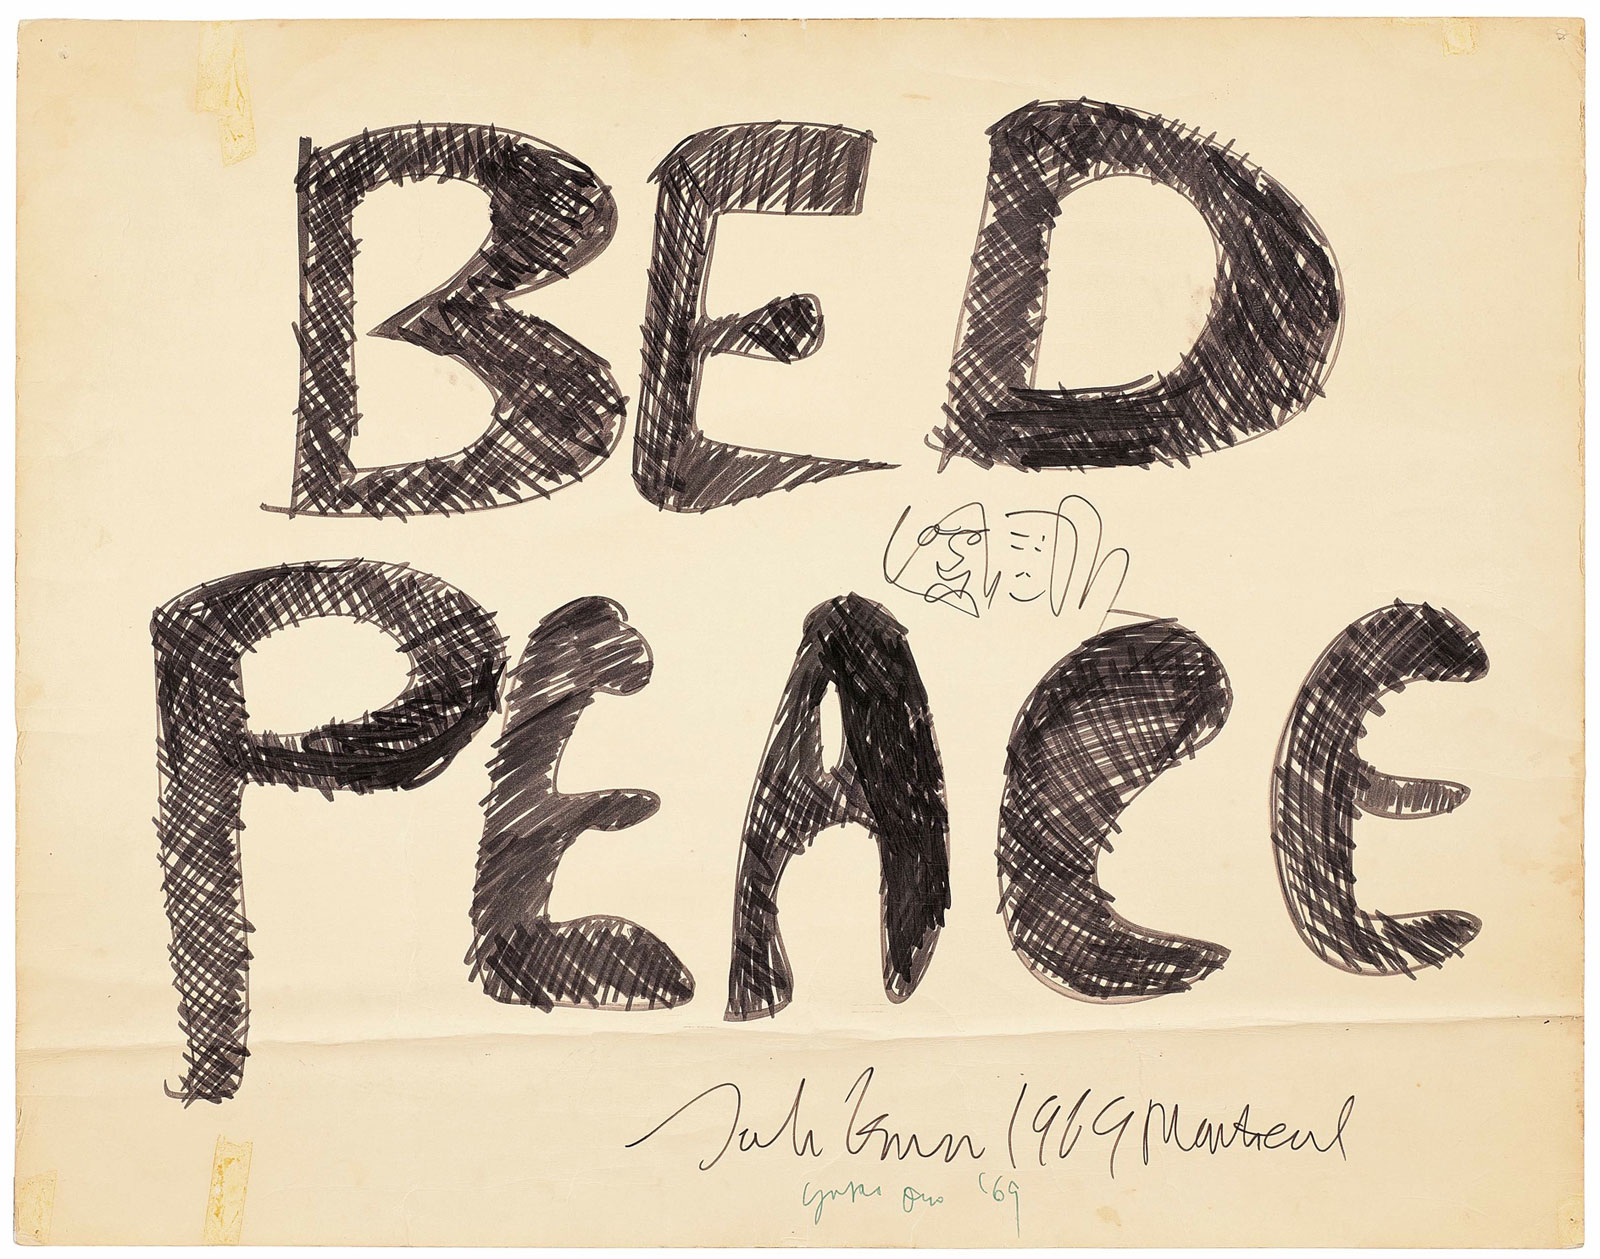 BED PEACE executed by John Lennon